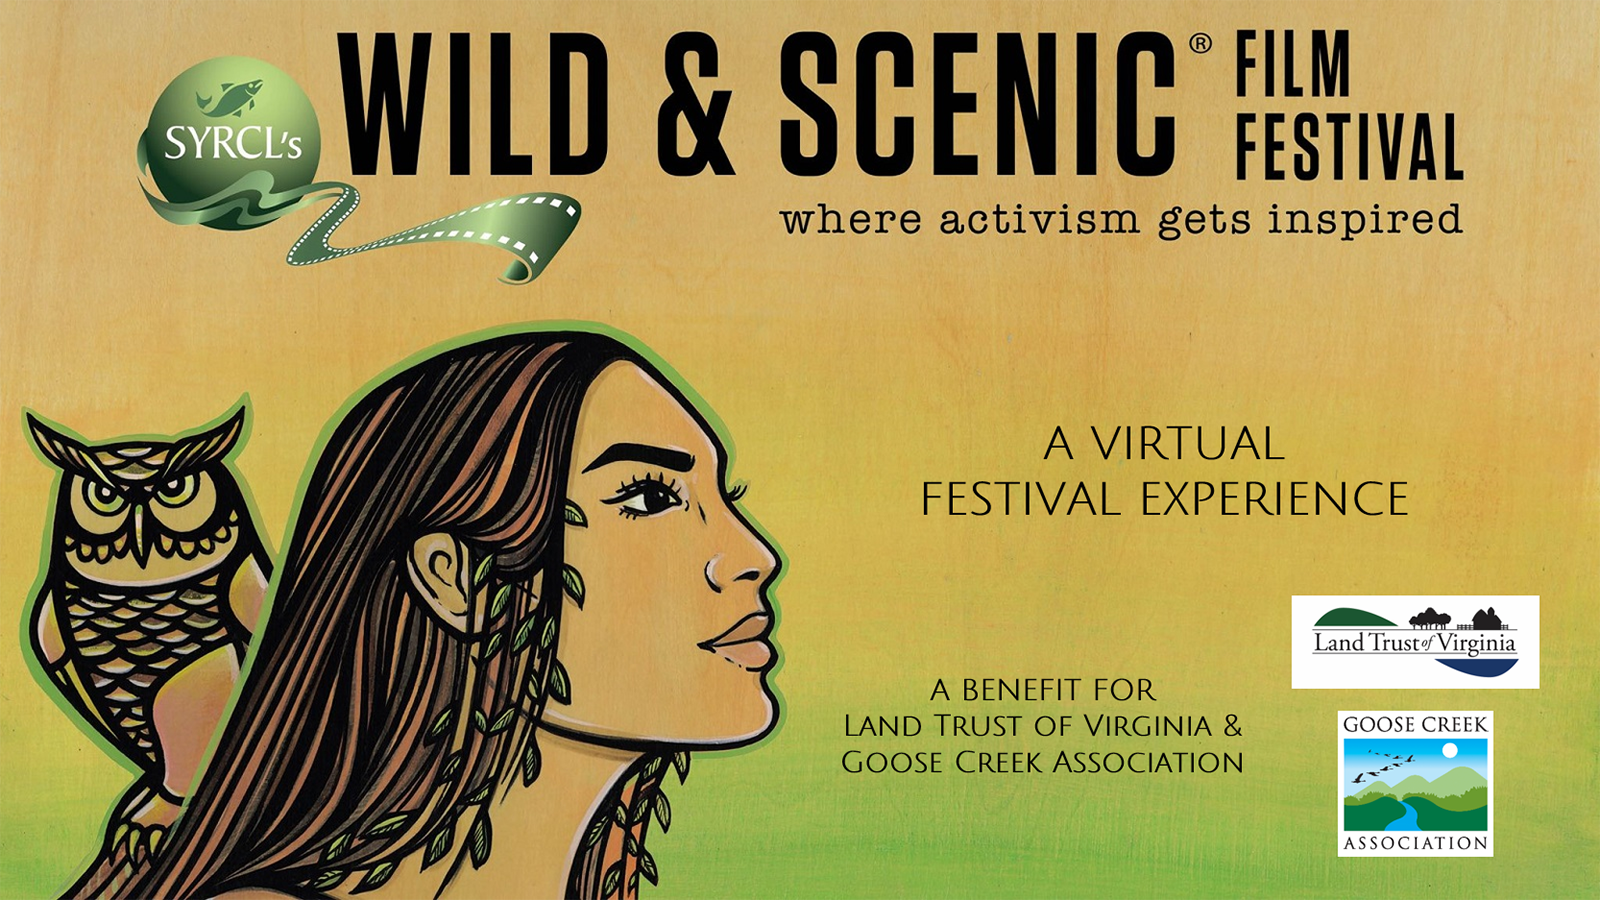 Land Trust of Virginia & Goose Creek Association Presents SYRCL's Wild & Scenic Film Festival On Tour